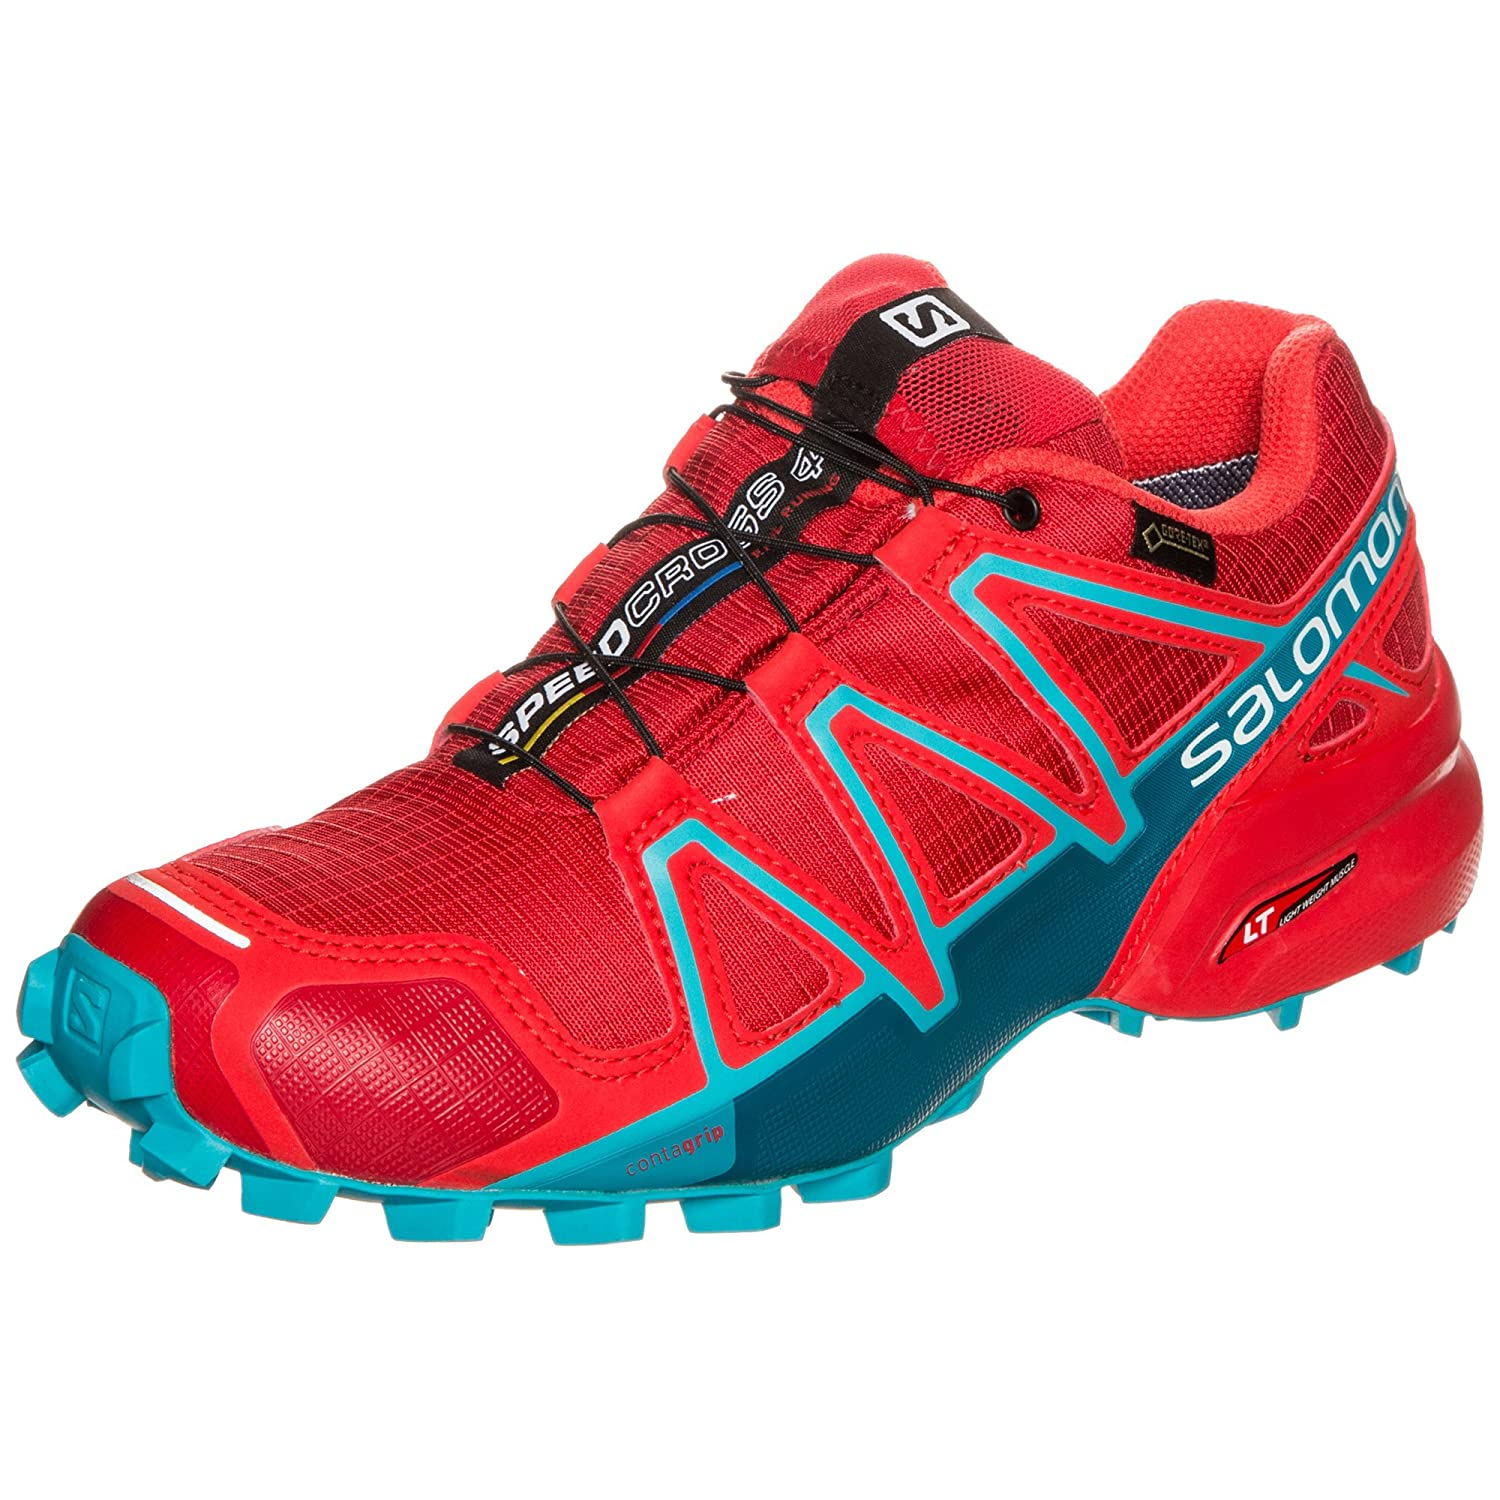 Salomon Speedcross 4 Gtx W, Zapatillas de Running Mujer, Rojo (Barbados Cherry/Poppy Red/Deep Lago), 42 2/3 EU: Amazon.es: Zapatos y complementos